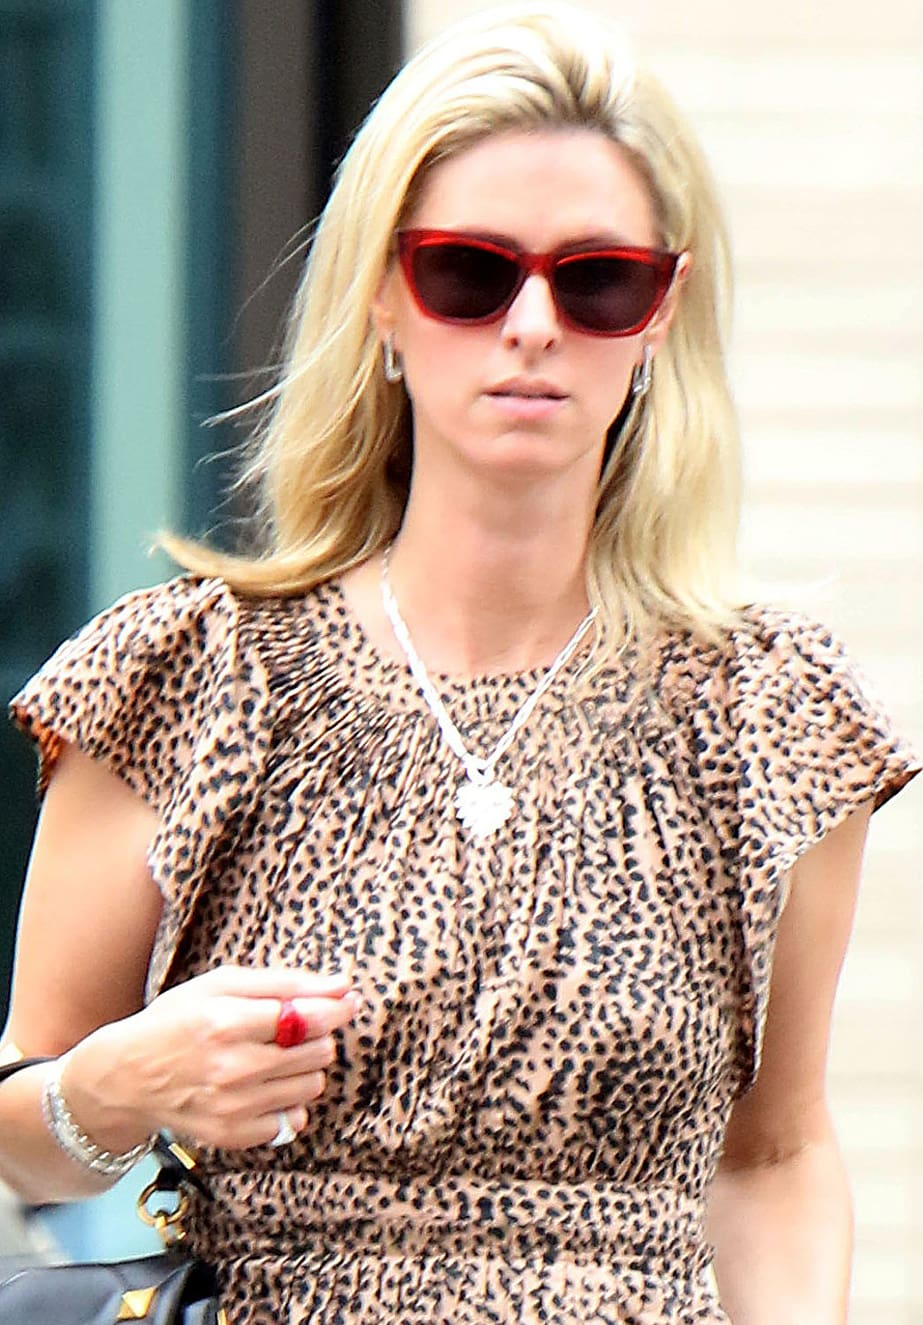 Nicky Hilton styles her look with red-framed sunglasses, minimal makeup, and loose tresses